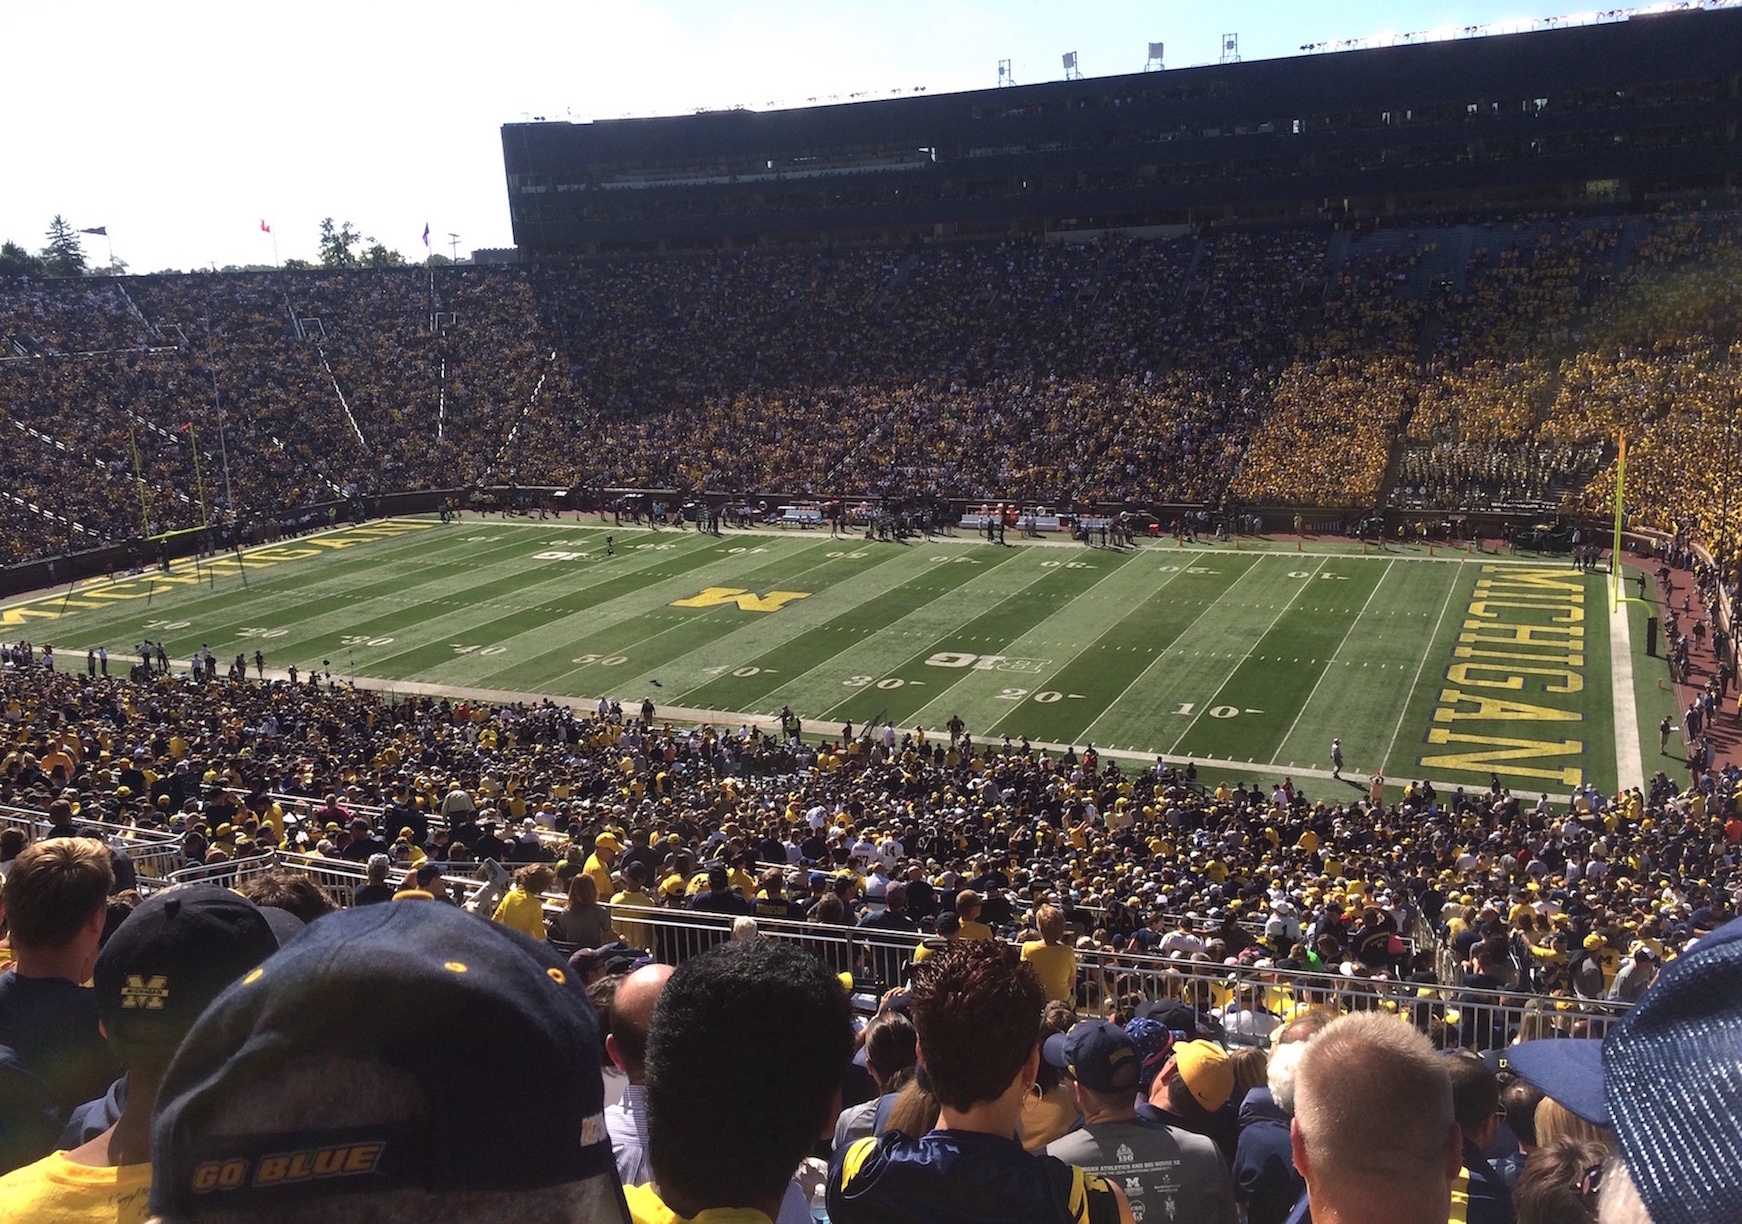 The University of Michigan football stadium in Ann Arbor holds nearly 110,00 people and is the second-largest stadium in the world.